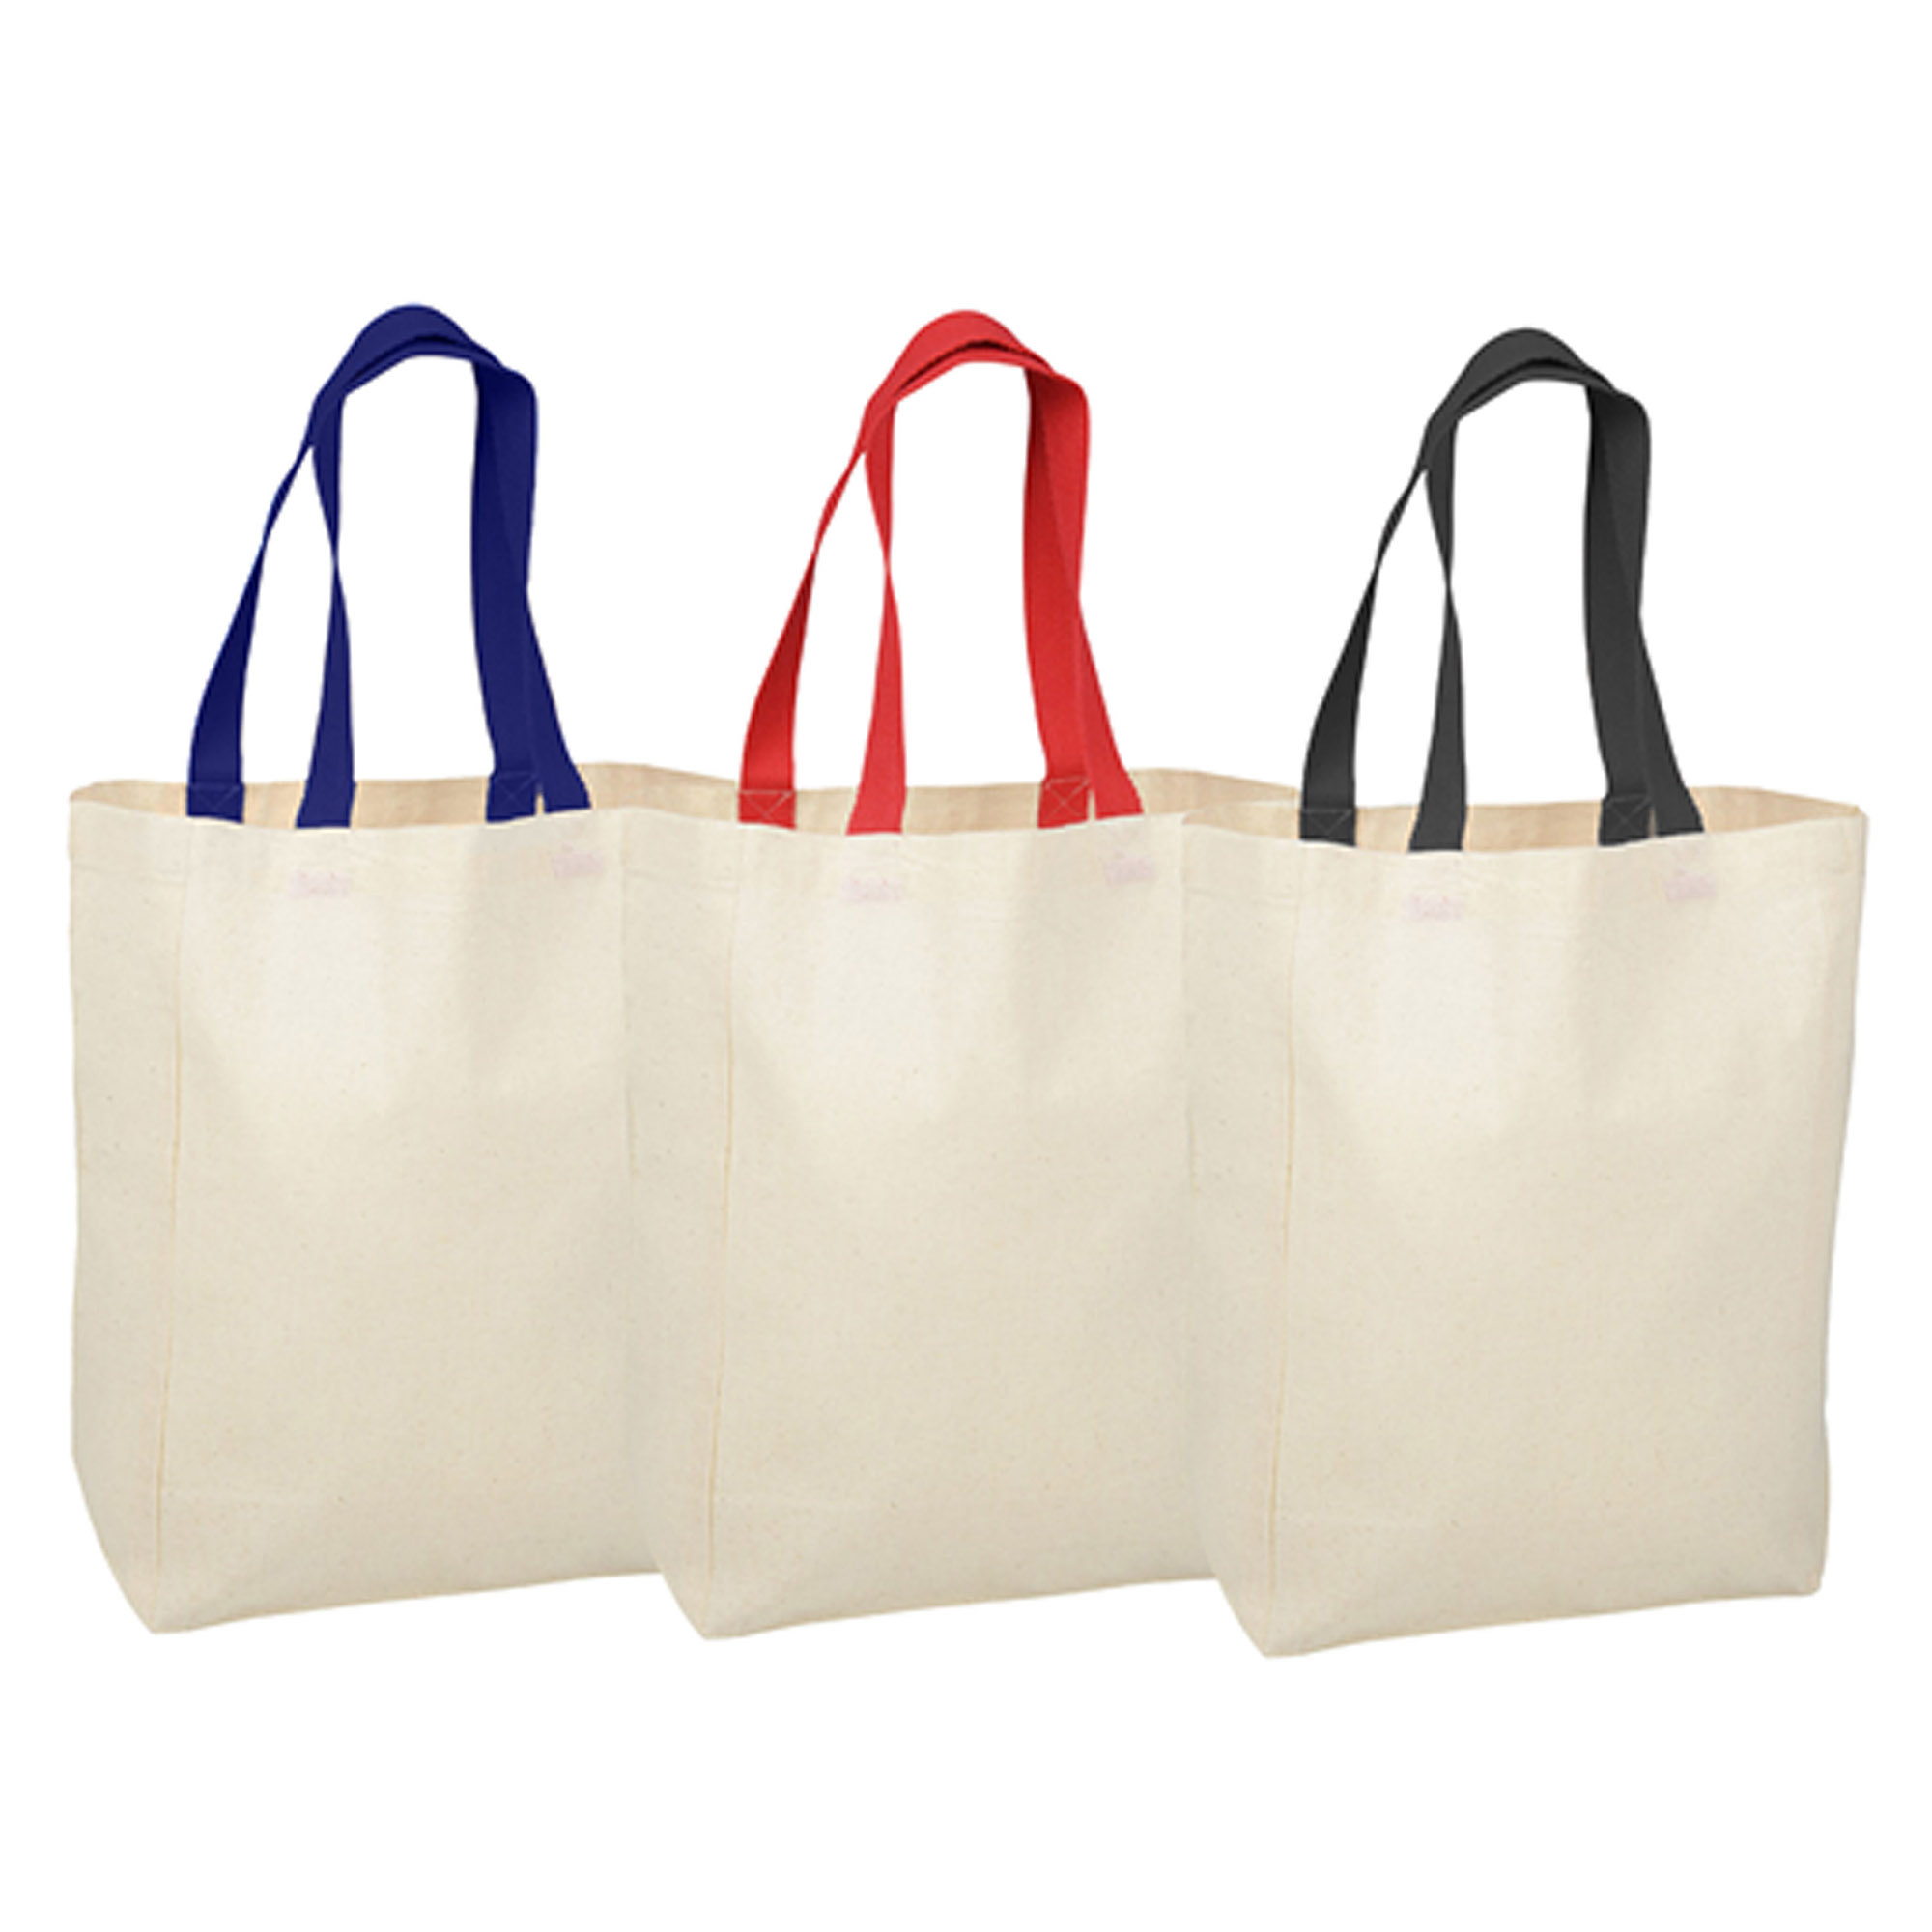 CALICO TRADE SHOW BAG - 1 Colour Print